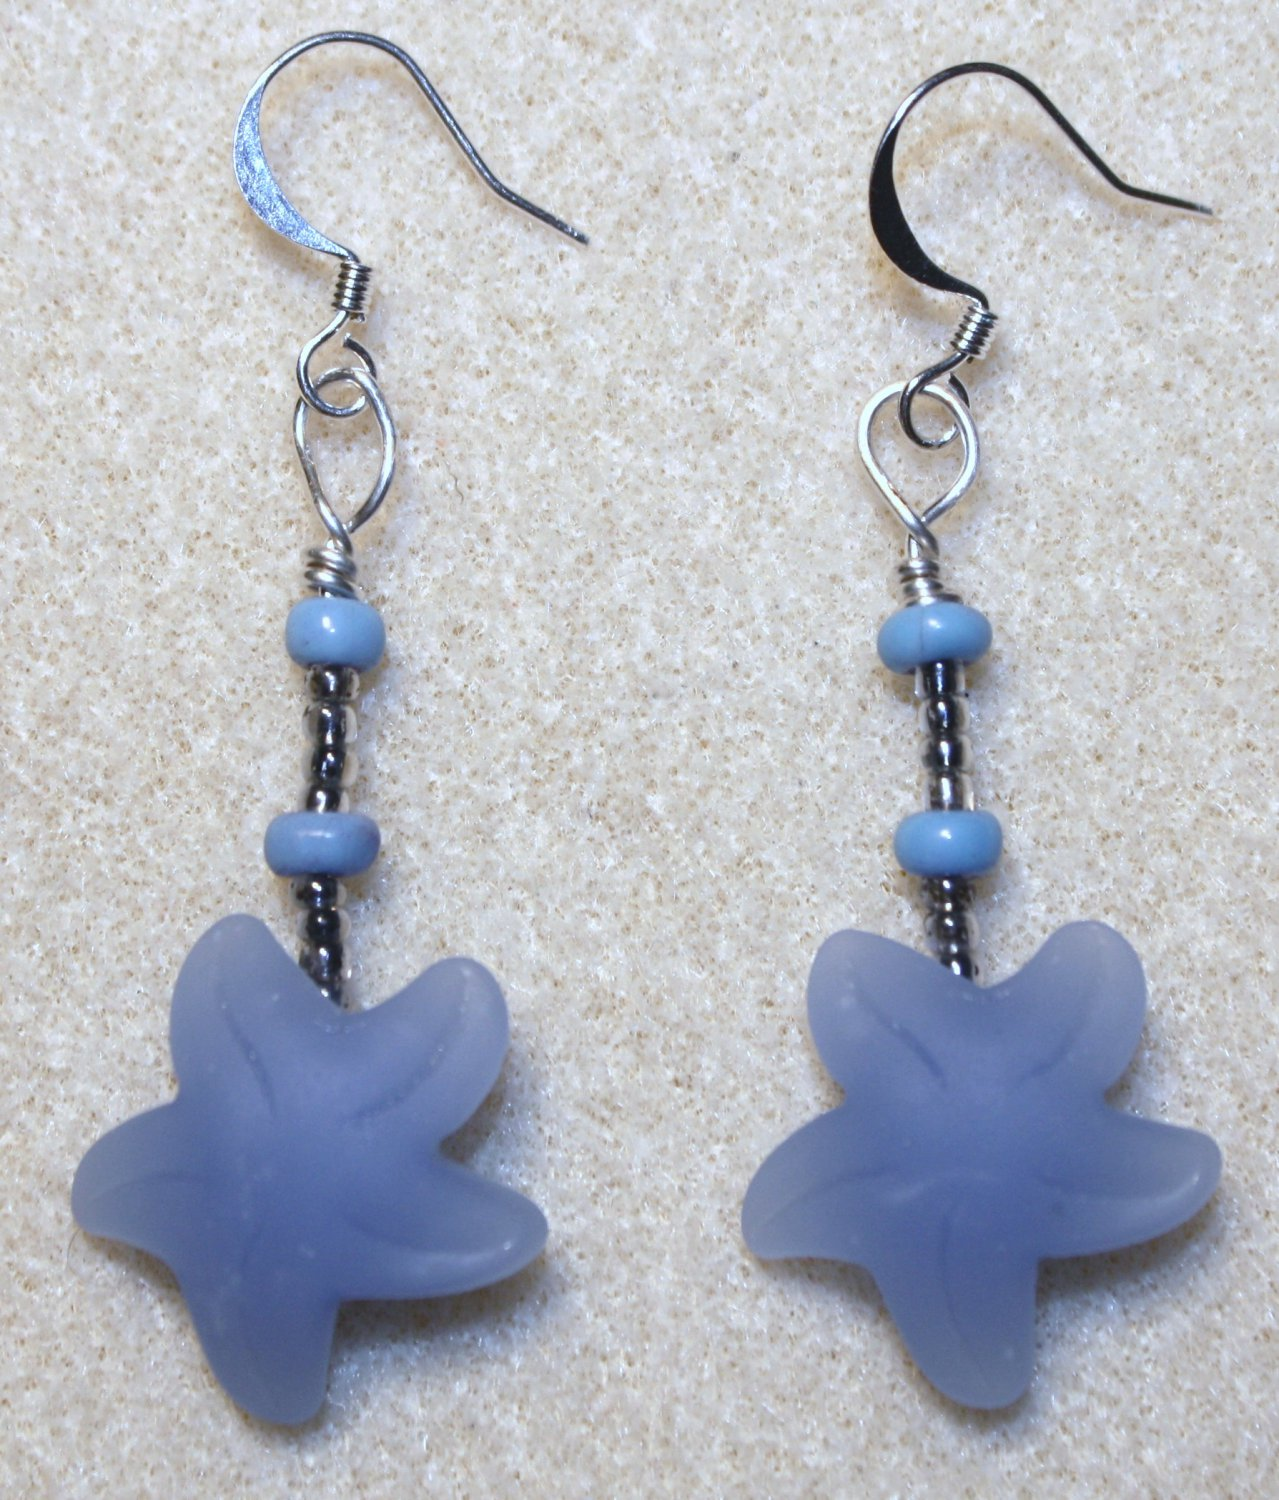 Cornflower Blue Sea Glass Starfish Earrings - Item #E298